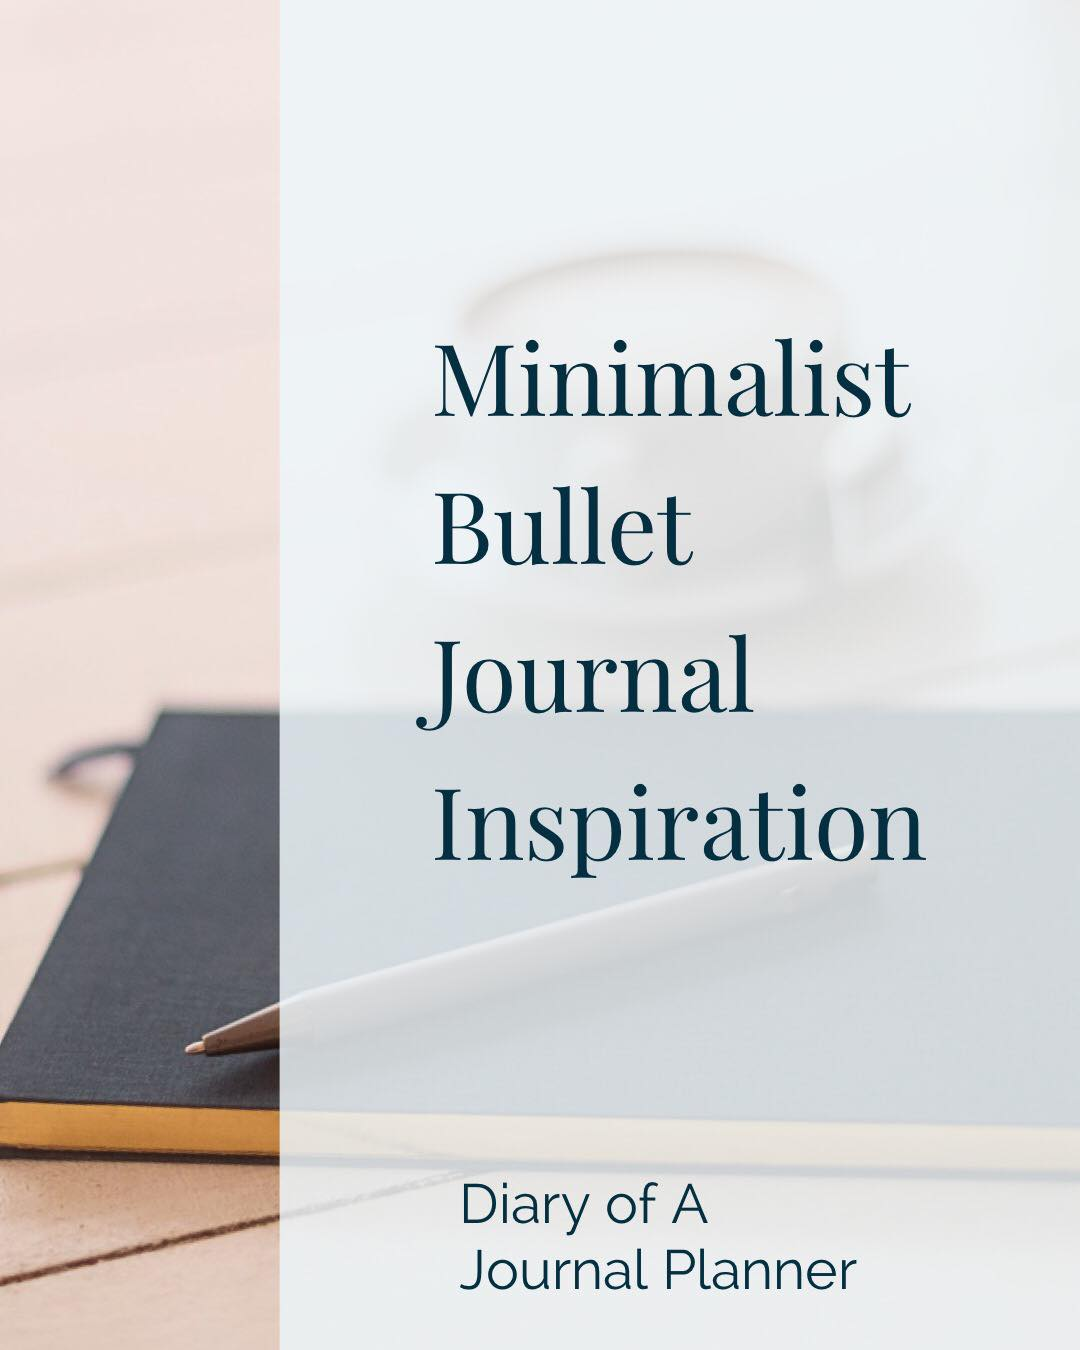 minimalist bullet journal ideas and layouts for weekly spreads.